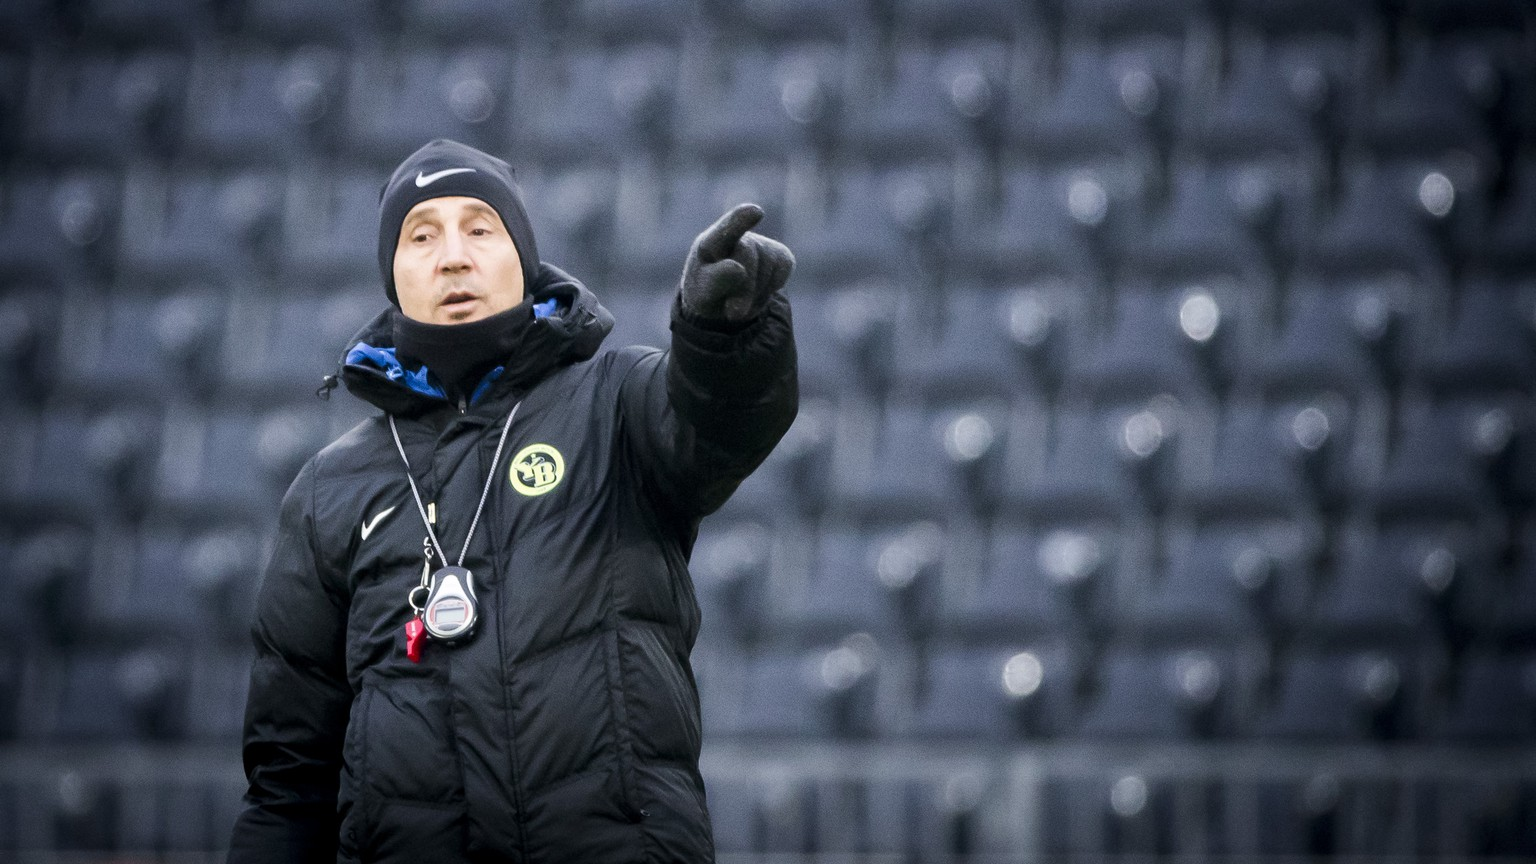 Young Boys' head coach Adi Huetter during a training session one day prior to the Europa League Group B match between Switzerland's BSC Young Boys and Albania's KF Skenderbeu Korce, in the Stade de Suisse stadium in Bern, Switzerland, on Wednesday, December 6, 2017. (KEYSTONE/Christian Merz)